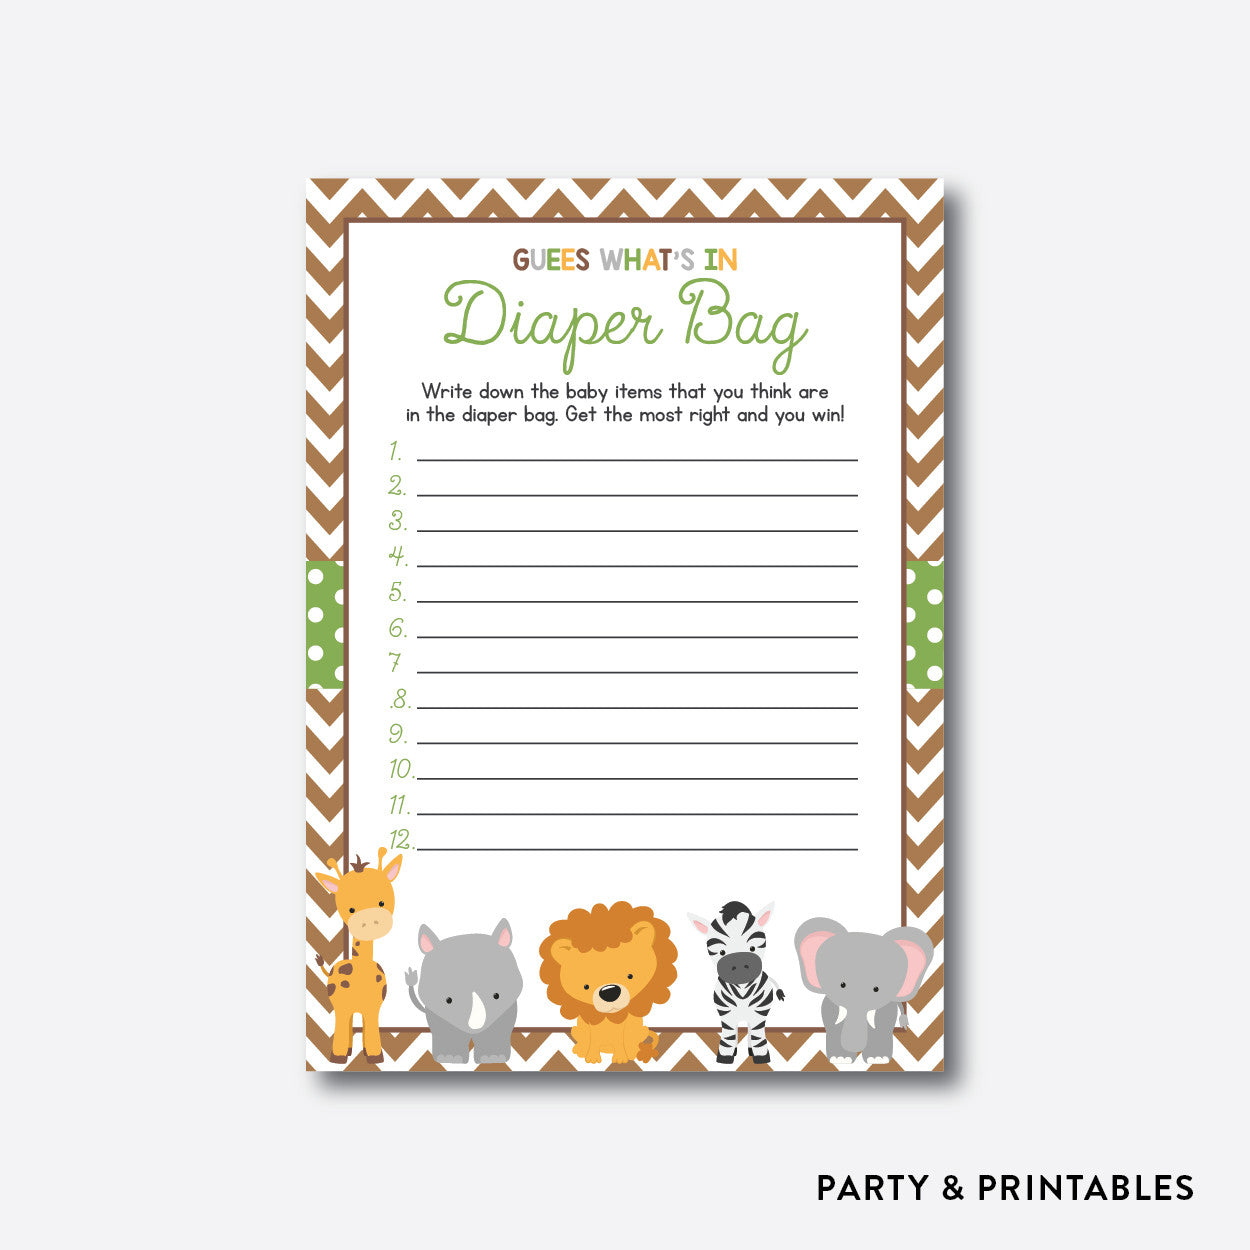 Baby Safari Guess What's In Diaper Bag / Non-Personalized / Instant Download (SBS.31), party printables - Party and Printables